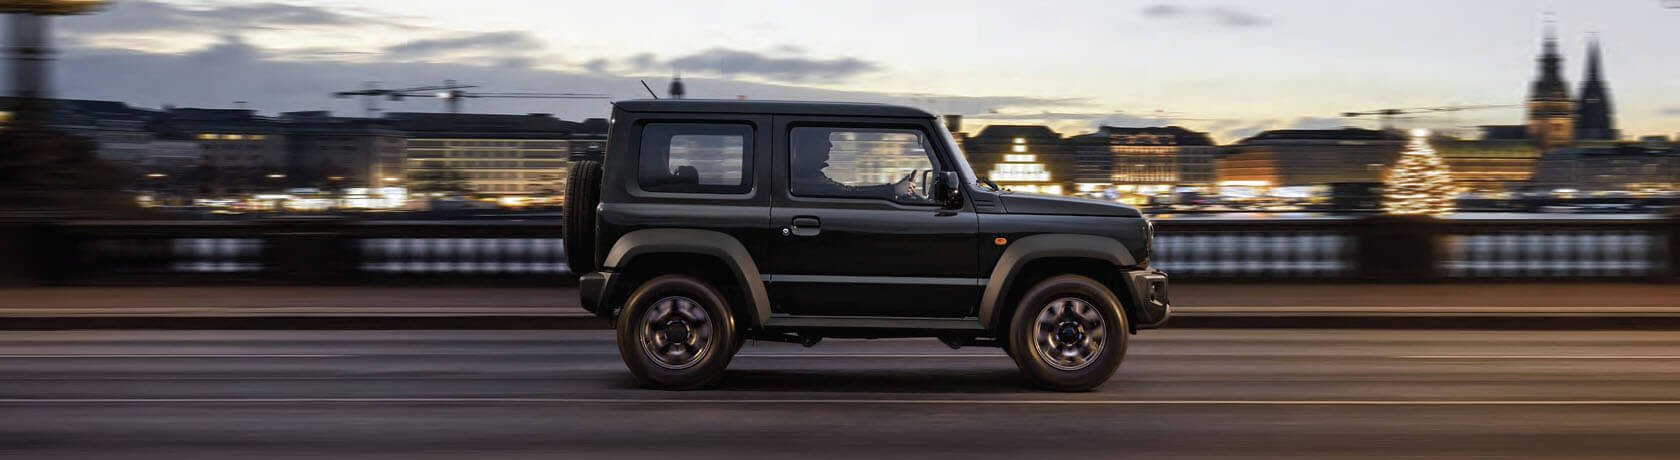 New Jimny for sale in Brisbane - Westpoint Suzuki